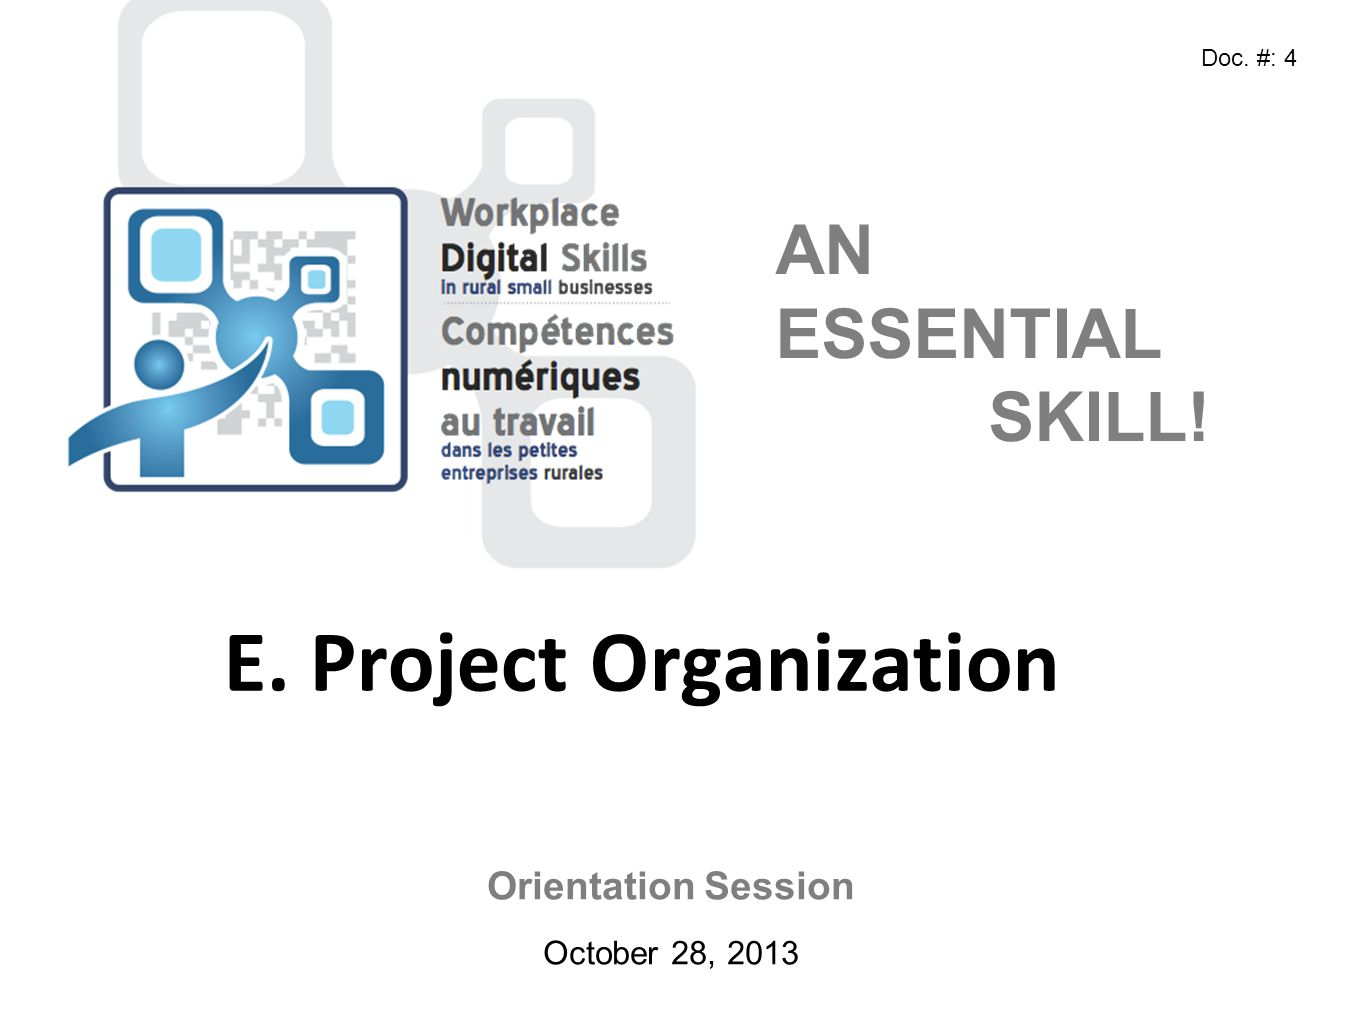 Orientation Session October 28, 2013 AN ESSENTIAL SKILL! E. Project Organization Doc. #: 4